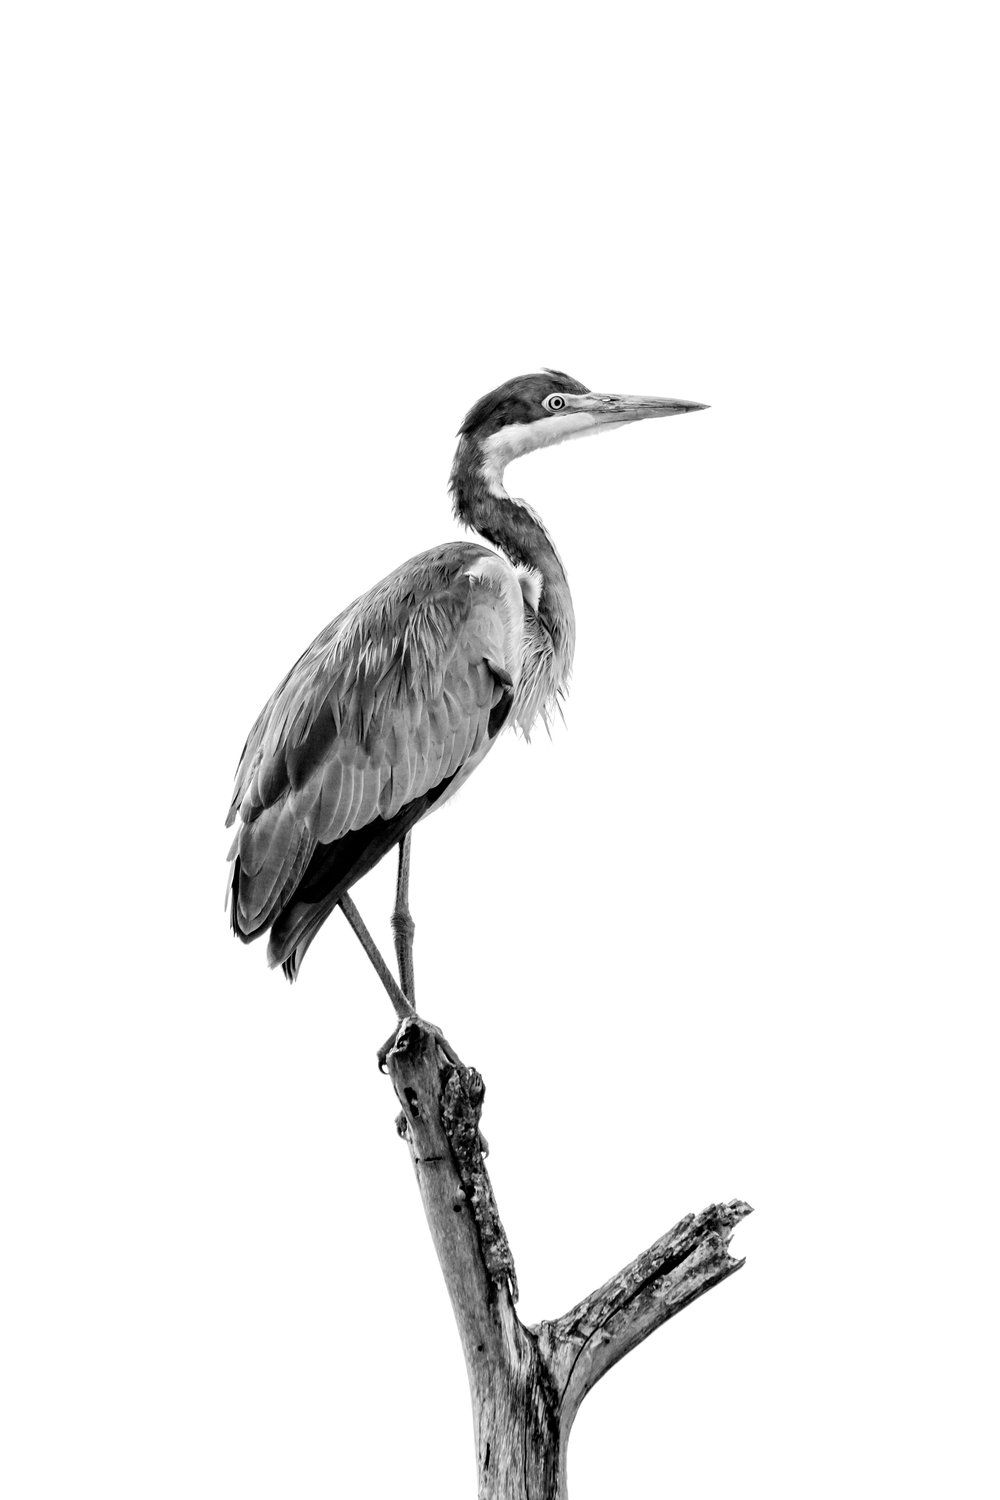 Black-headed heron in black and white